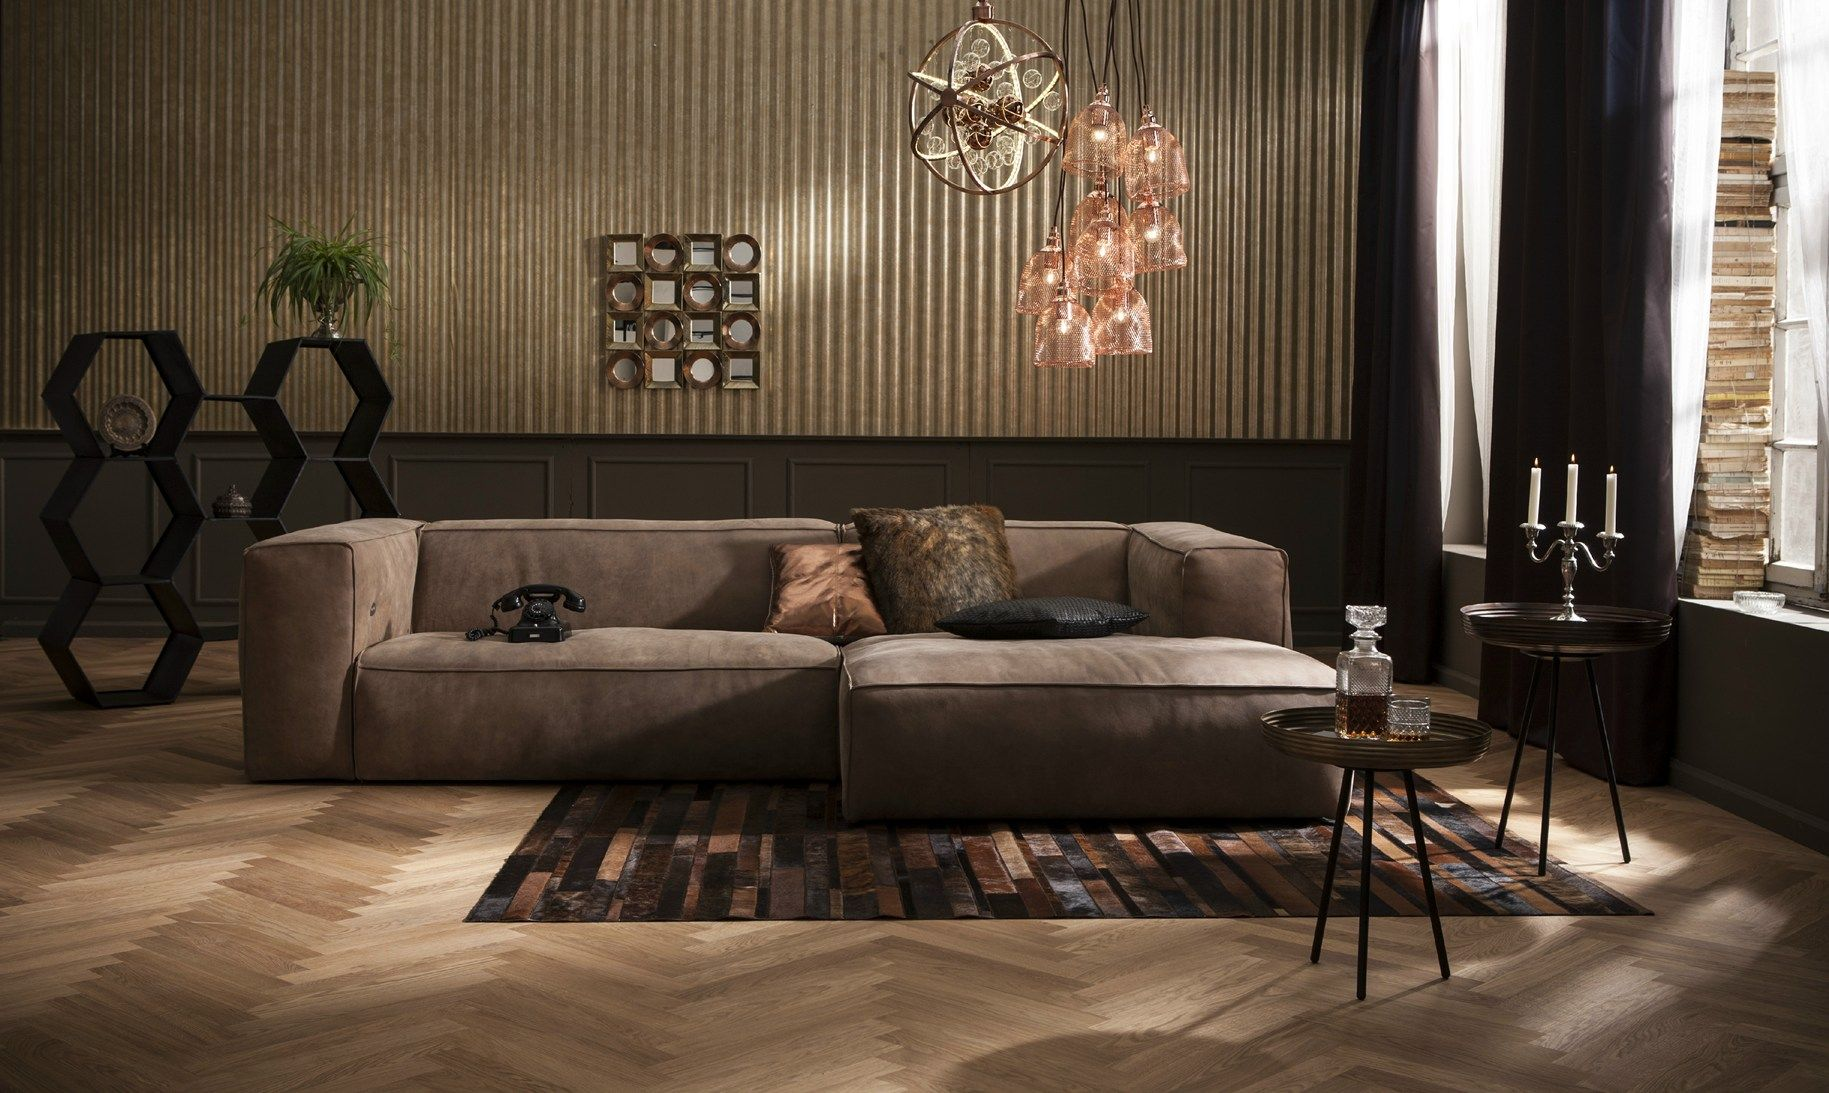 kare design at imm cologne